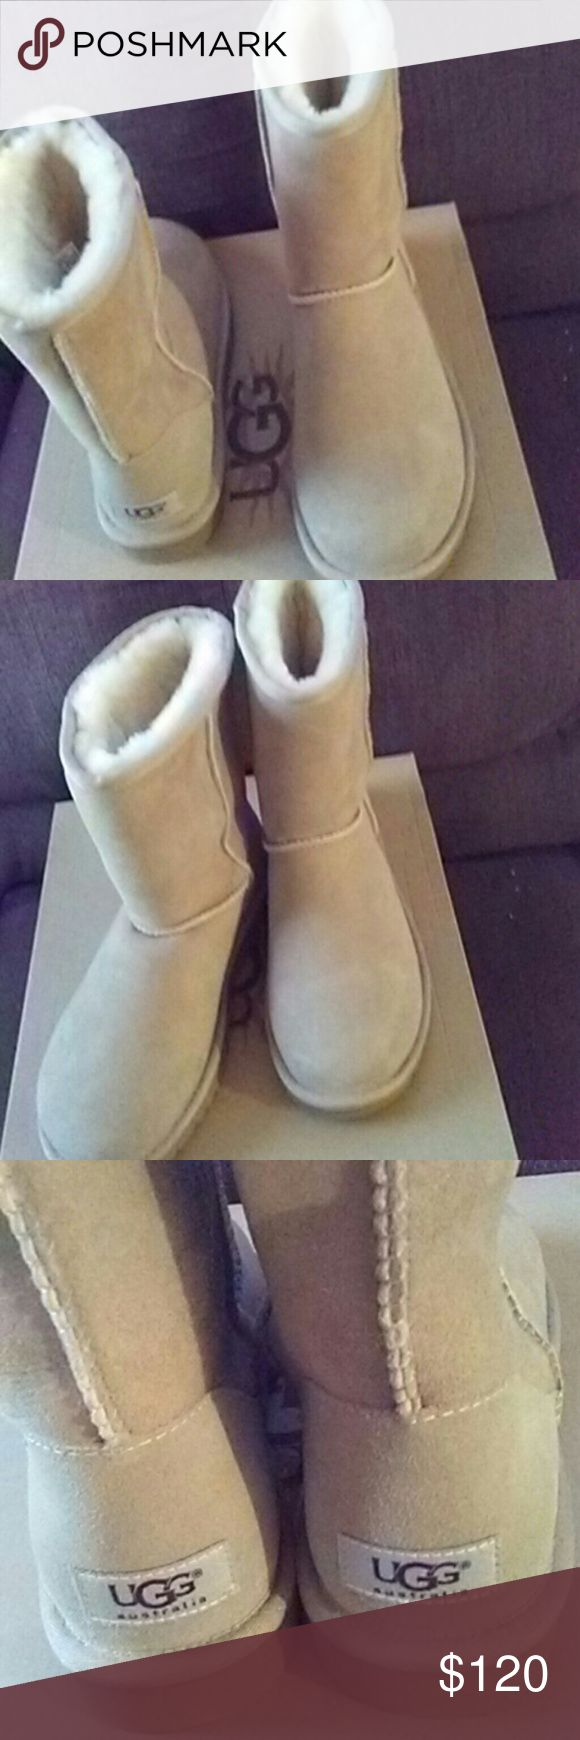 UGG Classic Short Boot in Sand color UGG Classic Short Boot in Sand color. Brand new! Never worn! UGG Shoes Winter & Rain Boots